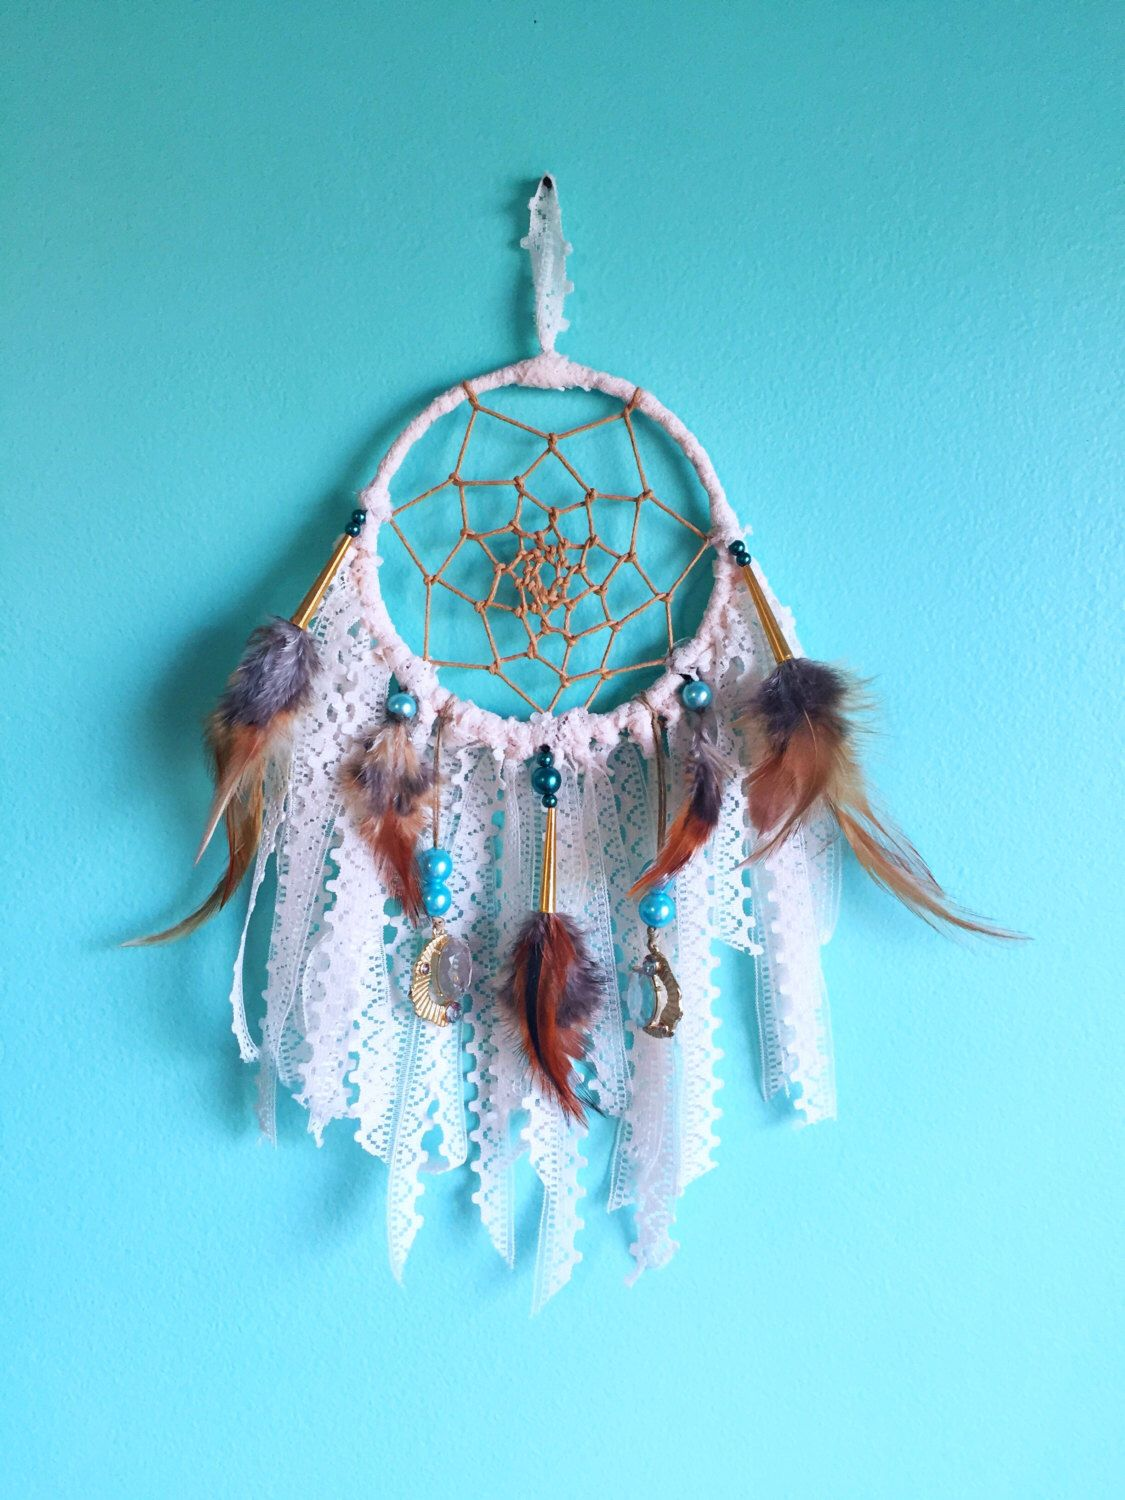 Boho hippie style dreamcatcher with lace feathers and teal turquoise pearls authentically made by ojibwe crafter by EarthDiverCreations on Etsy https://www.etsy.com/ca/listing/478011890/boho-hippie-style-dreamcatcher-with-lace